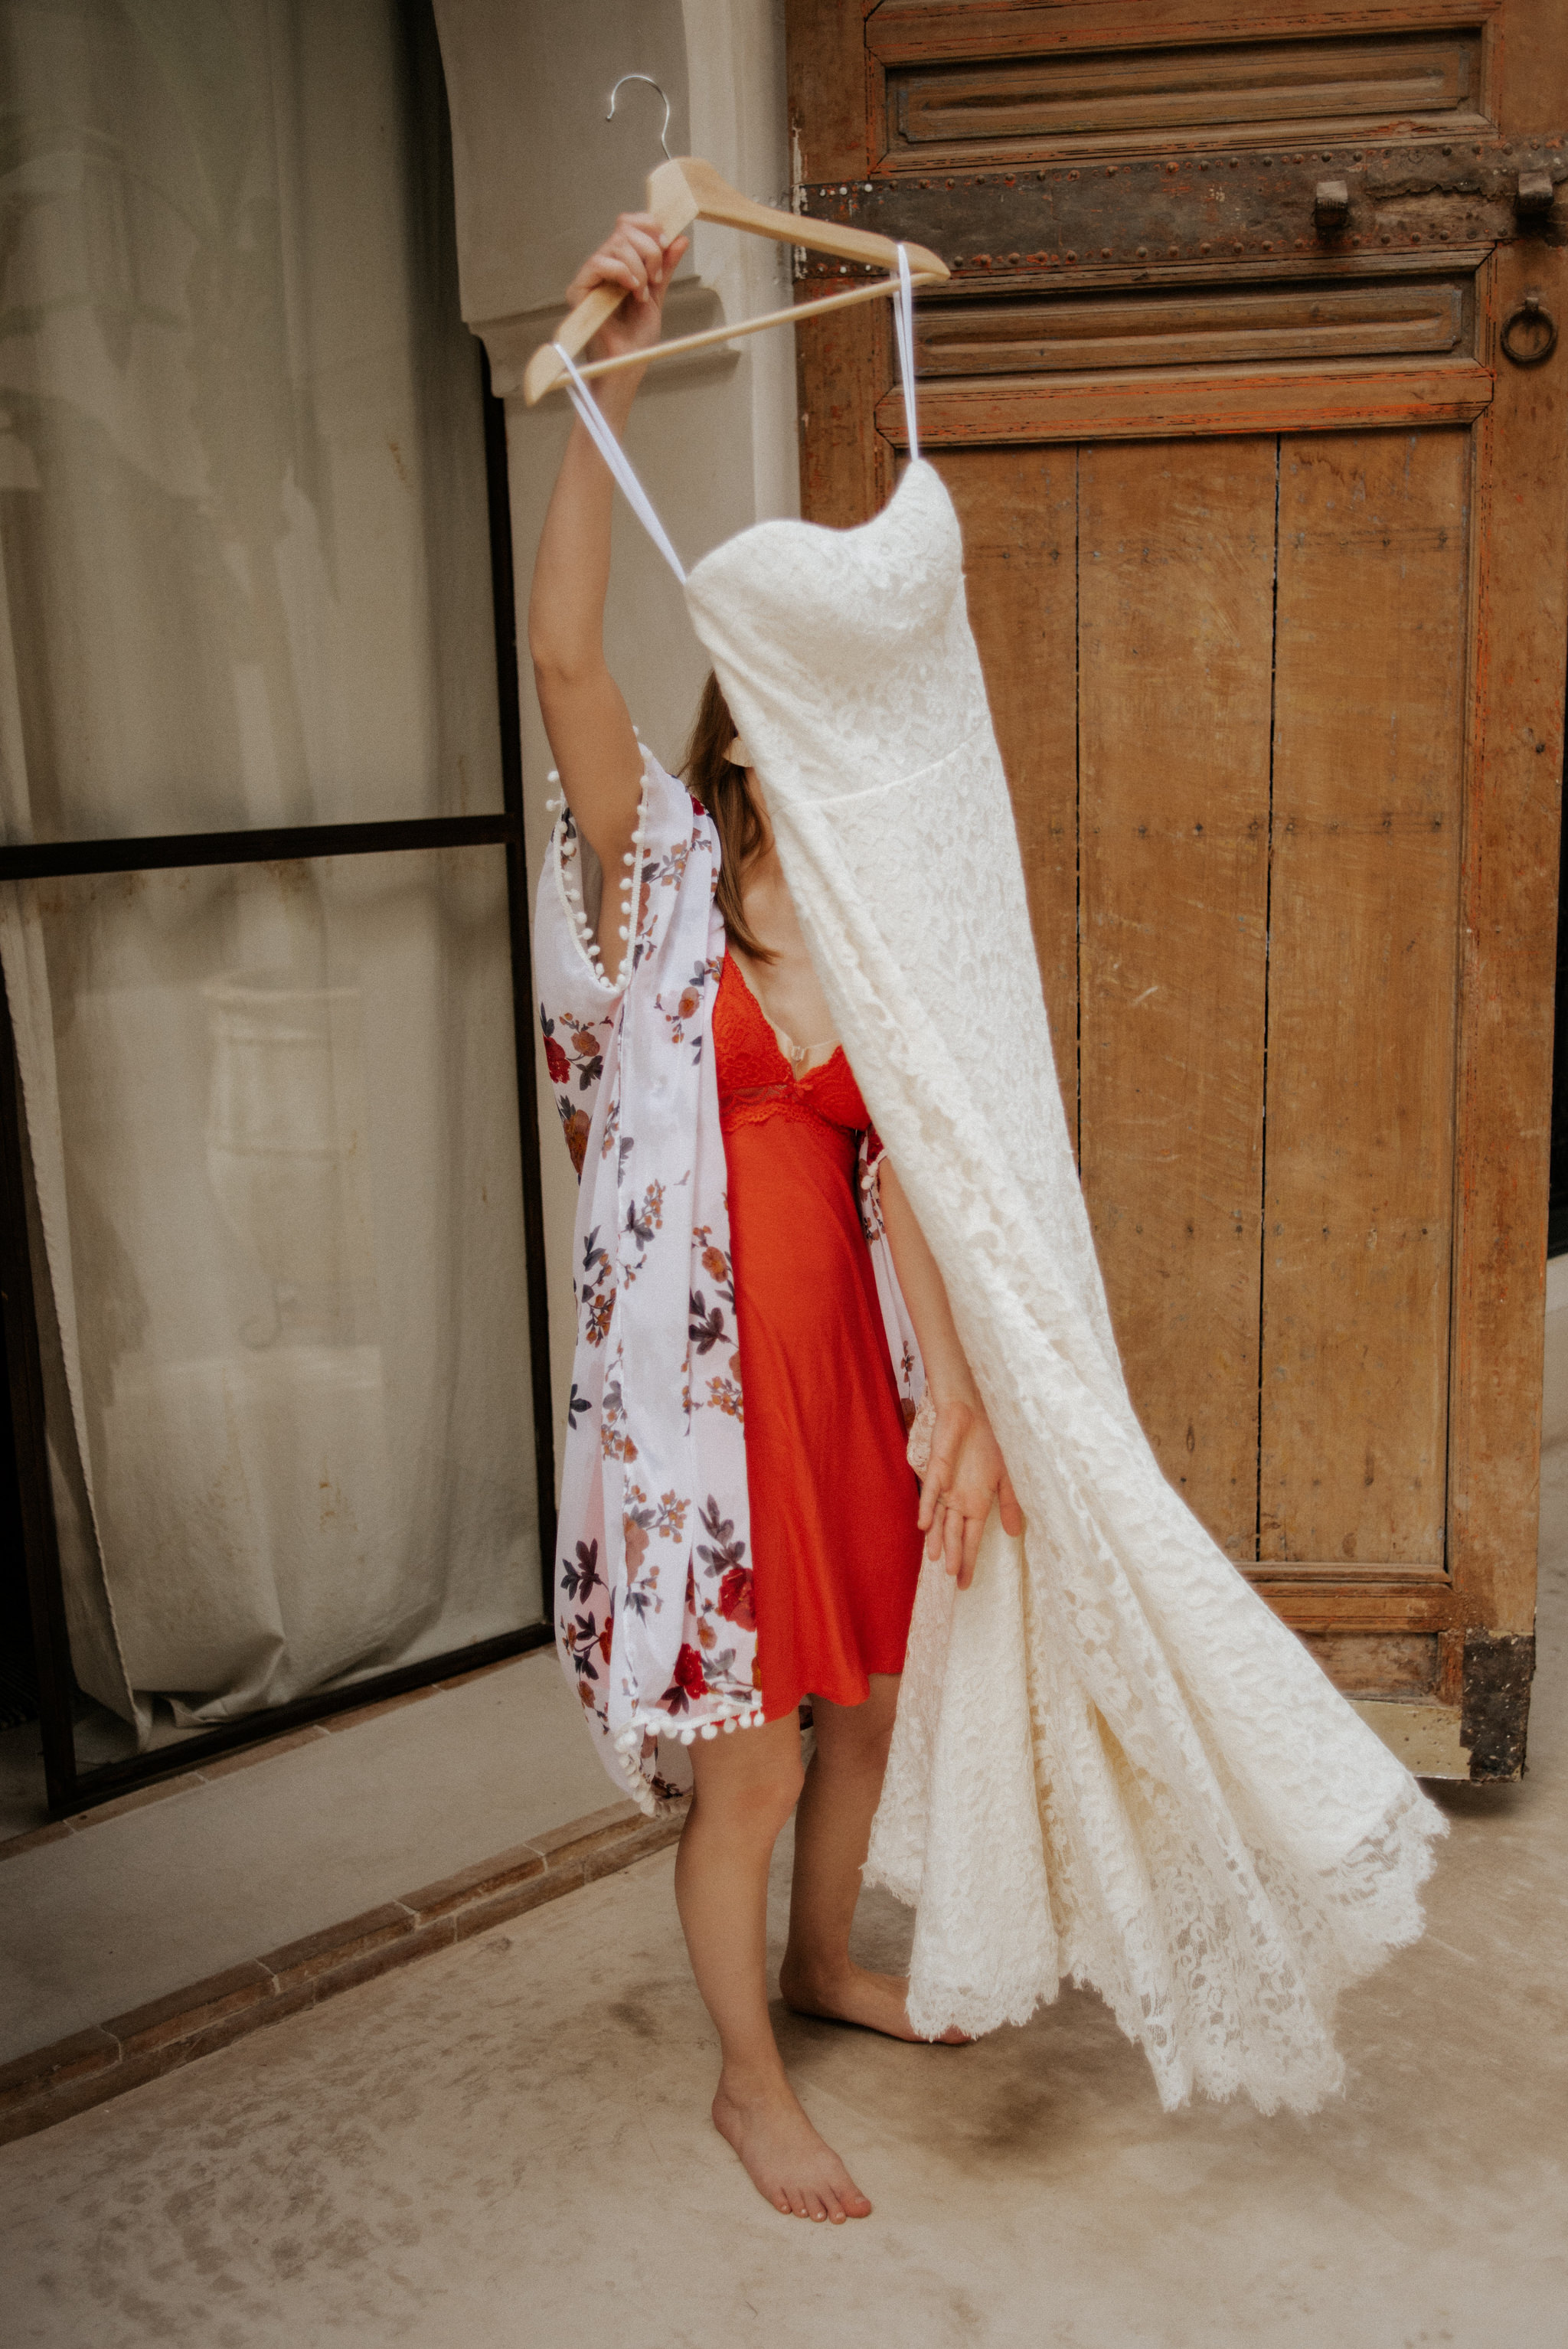 Bride holding dress, about to get ready for Morocco elopement